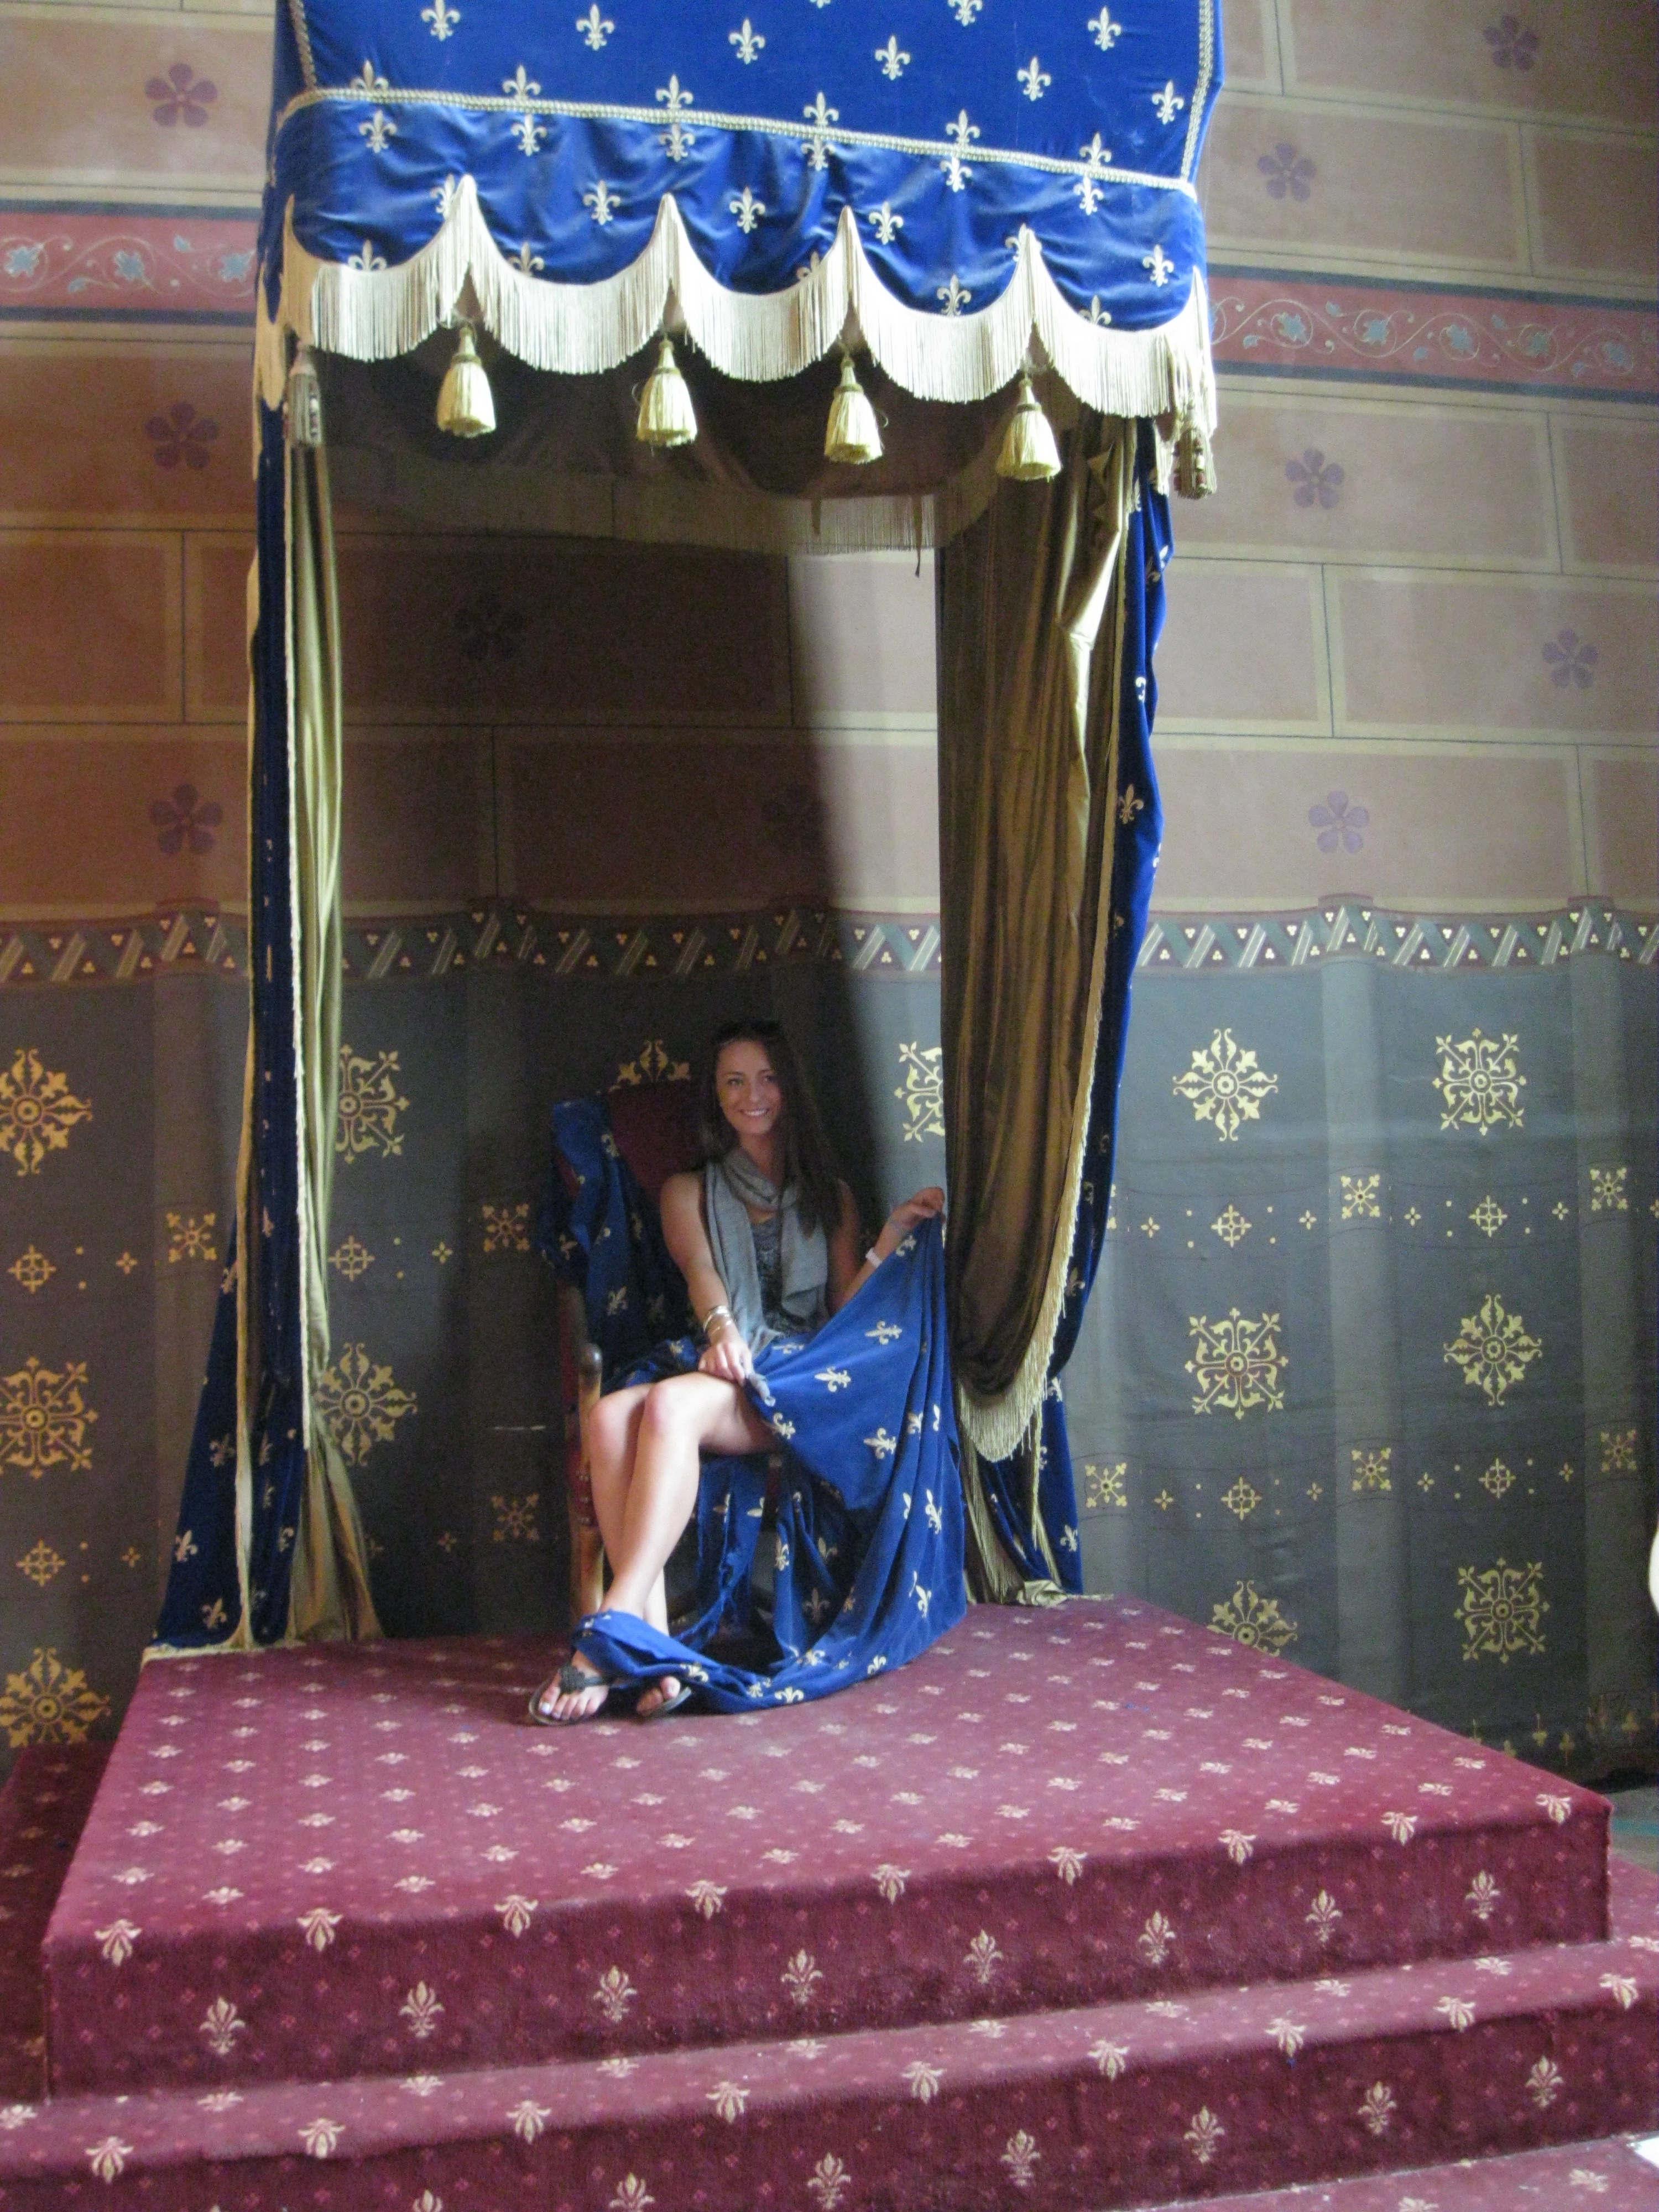 Blois, King and queen's chair